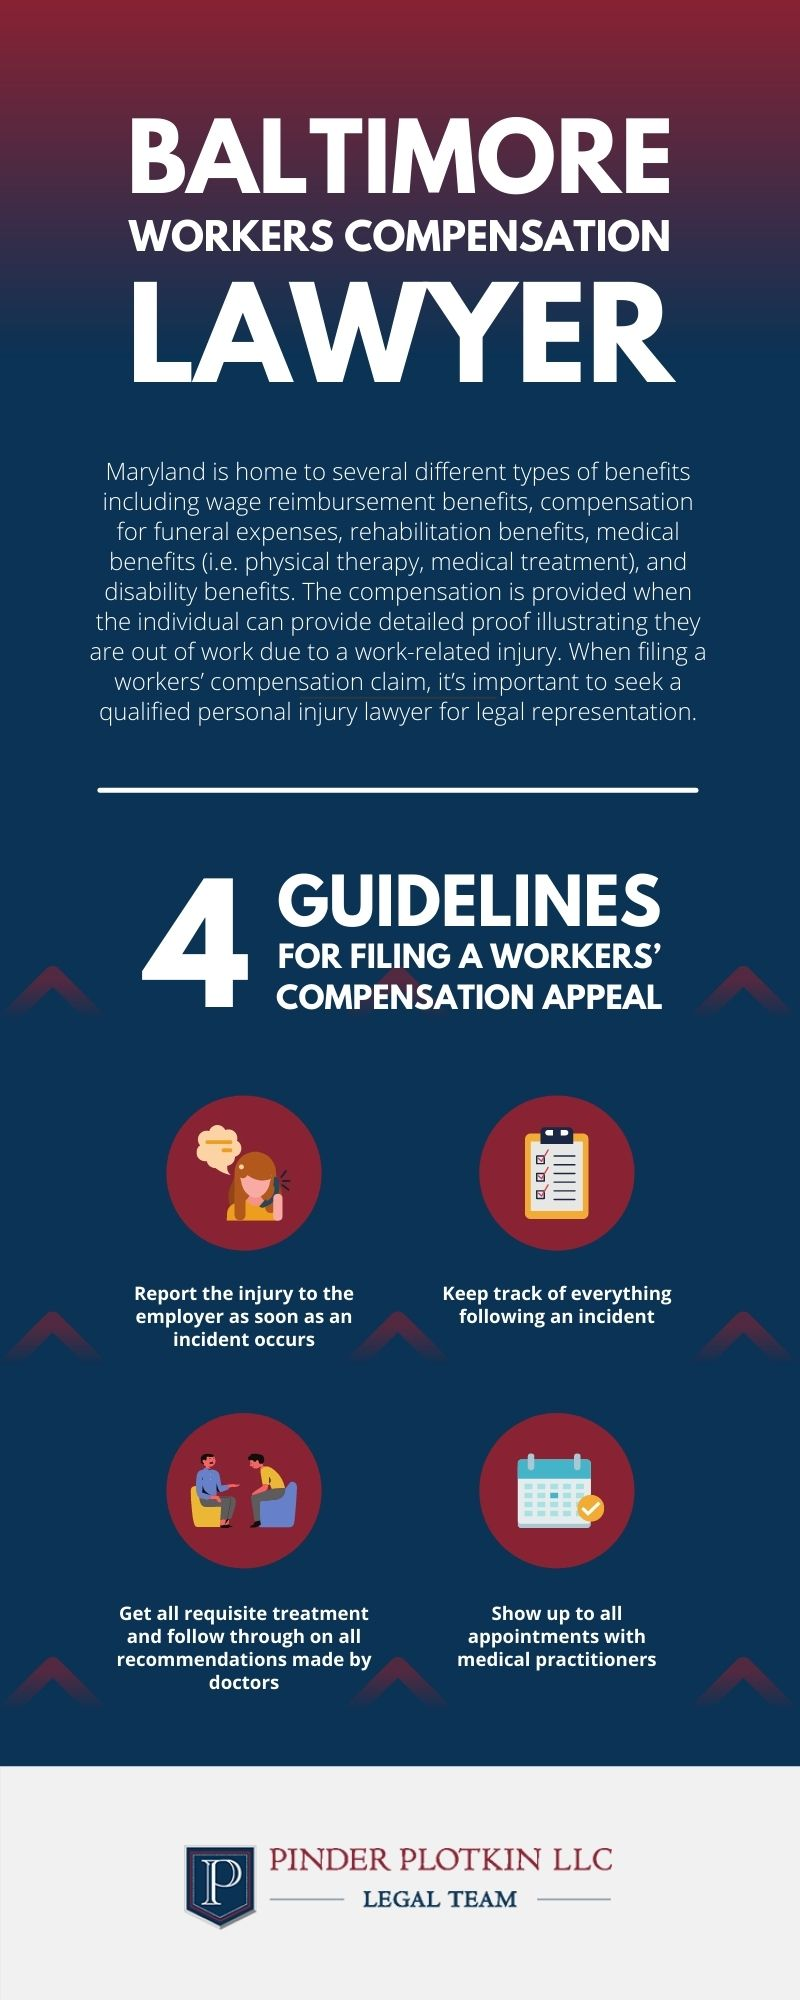 Baltimore Workers Compensation Lawyer Infographic